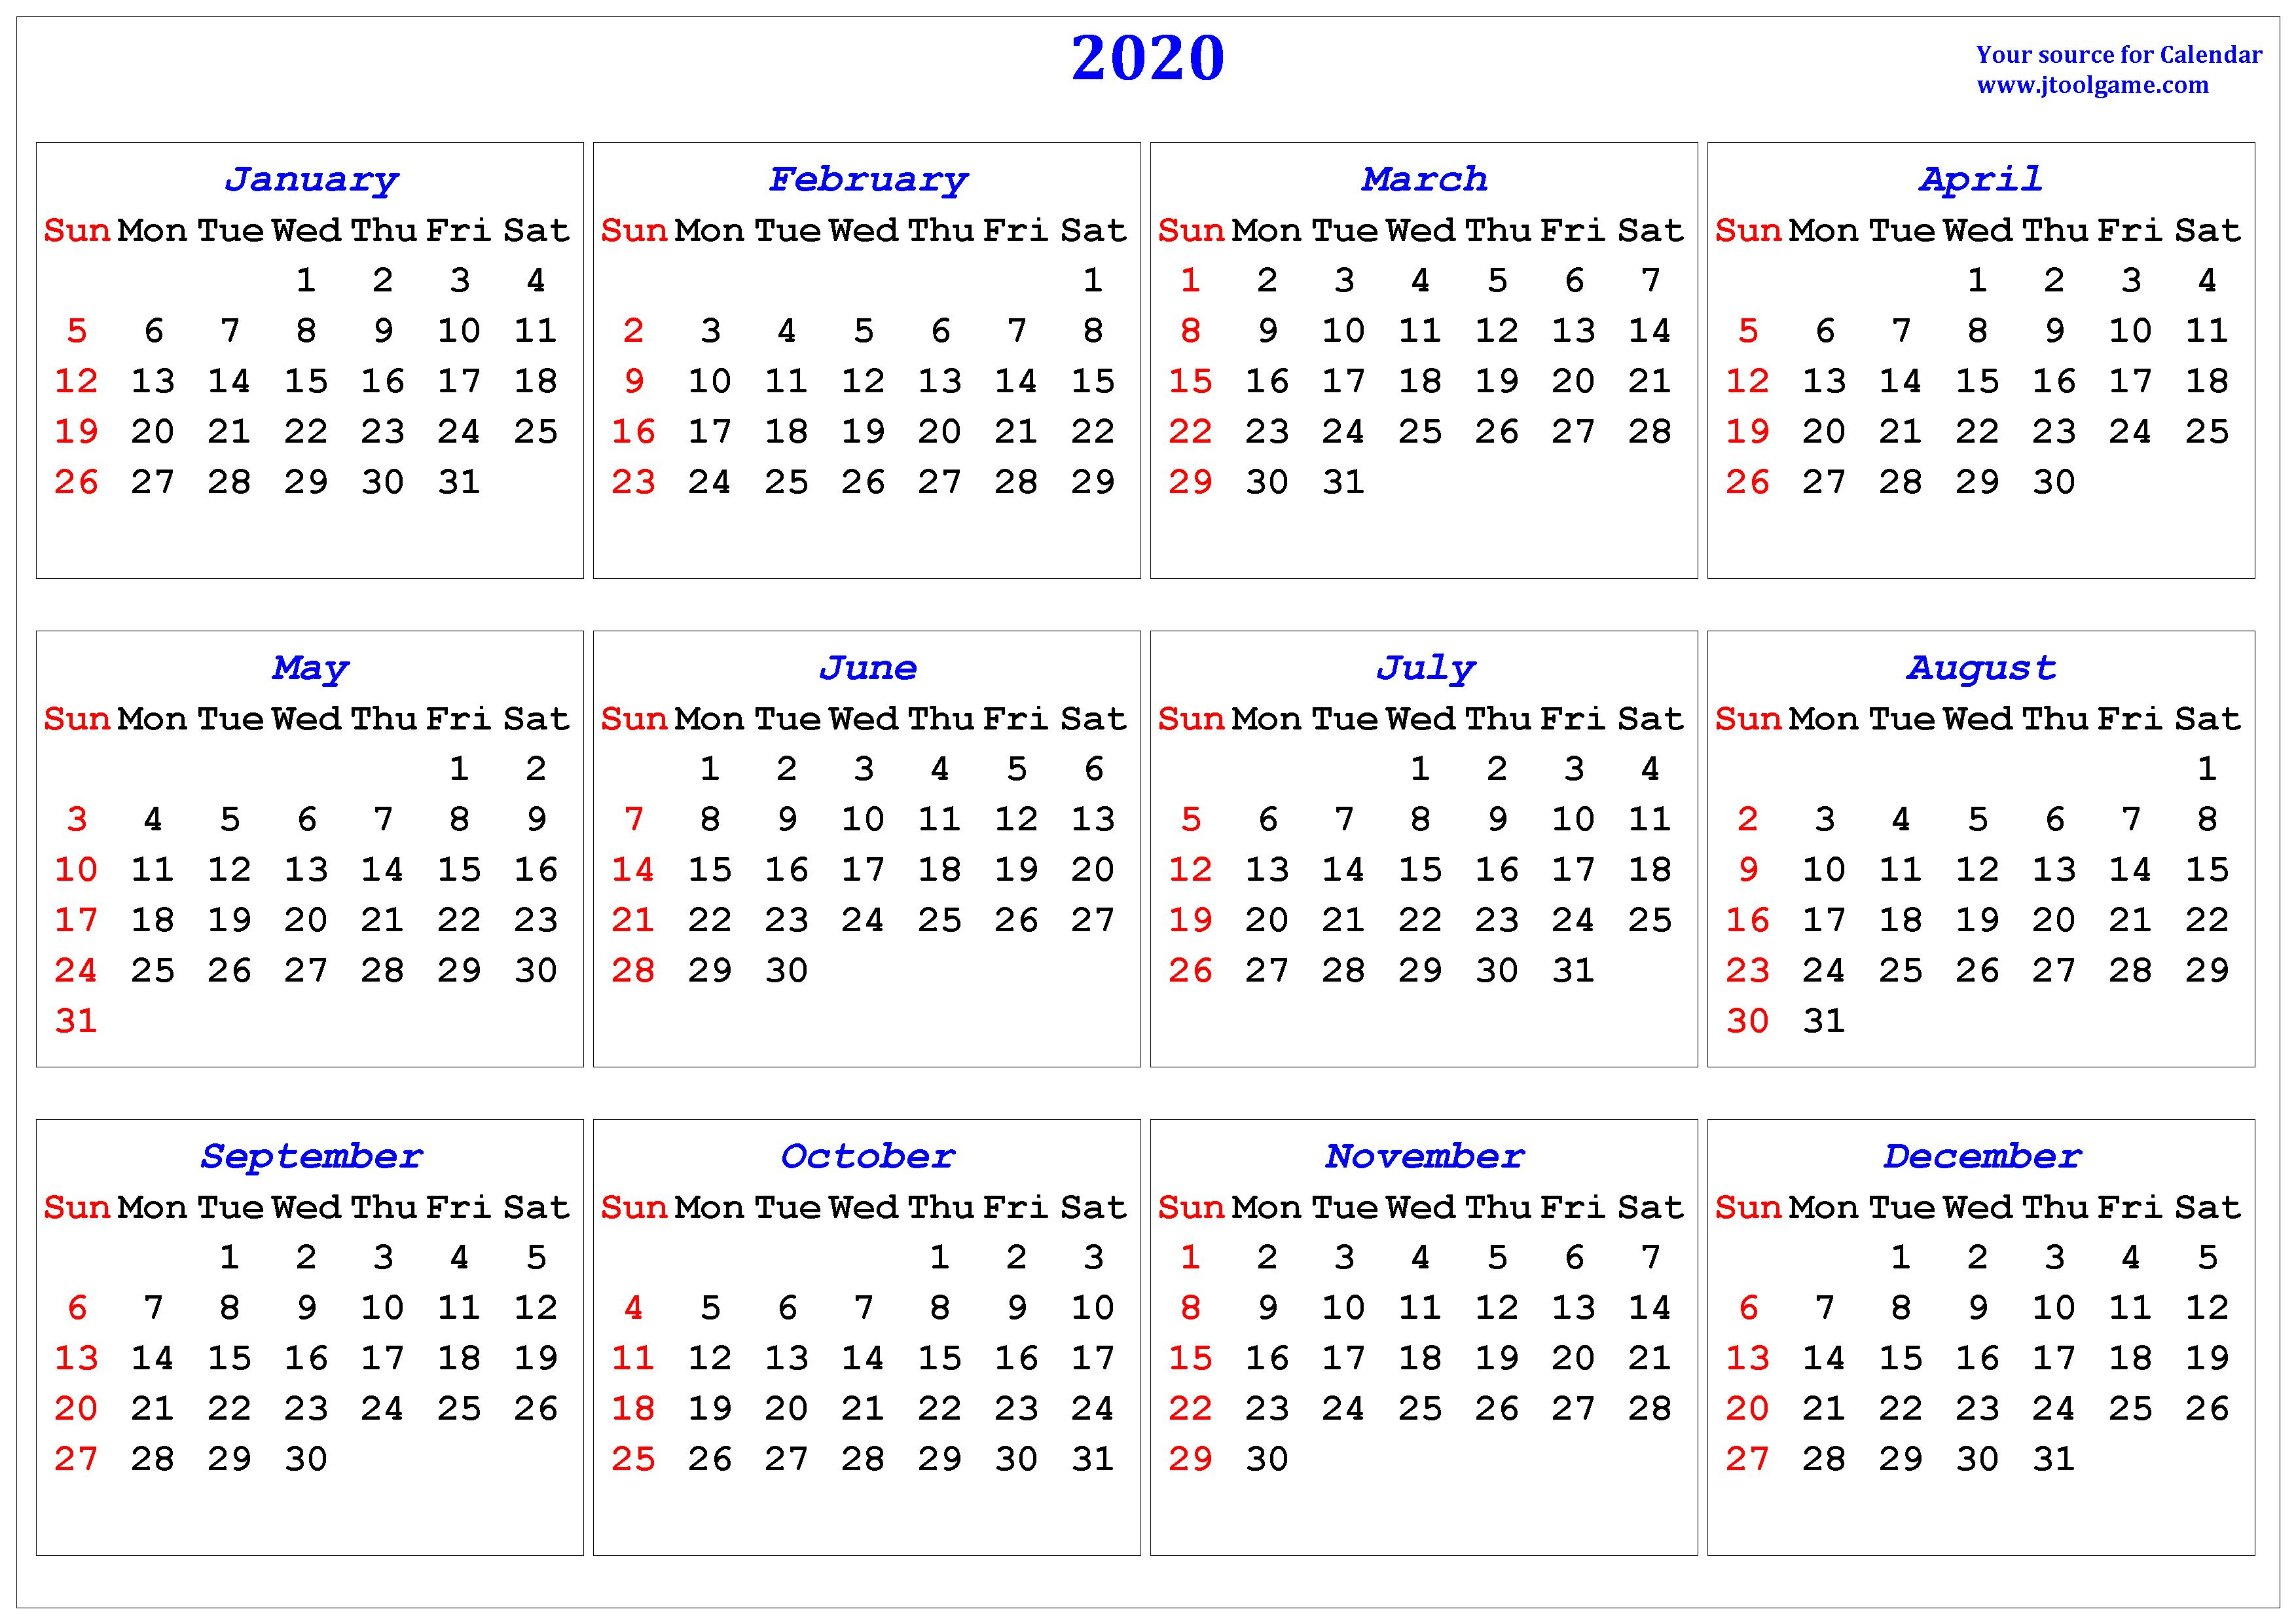 2020 Calendar - Printable Calendar. 2020 Calendar In Multiple Colors